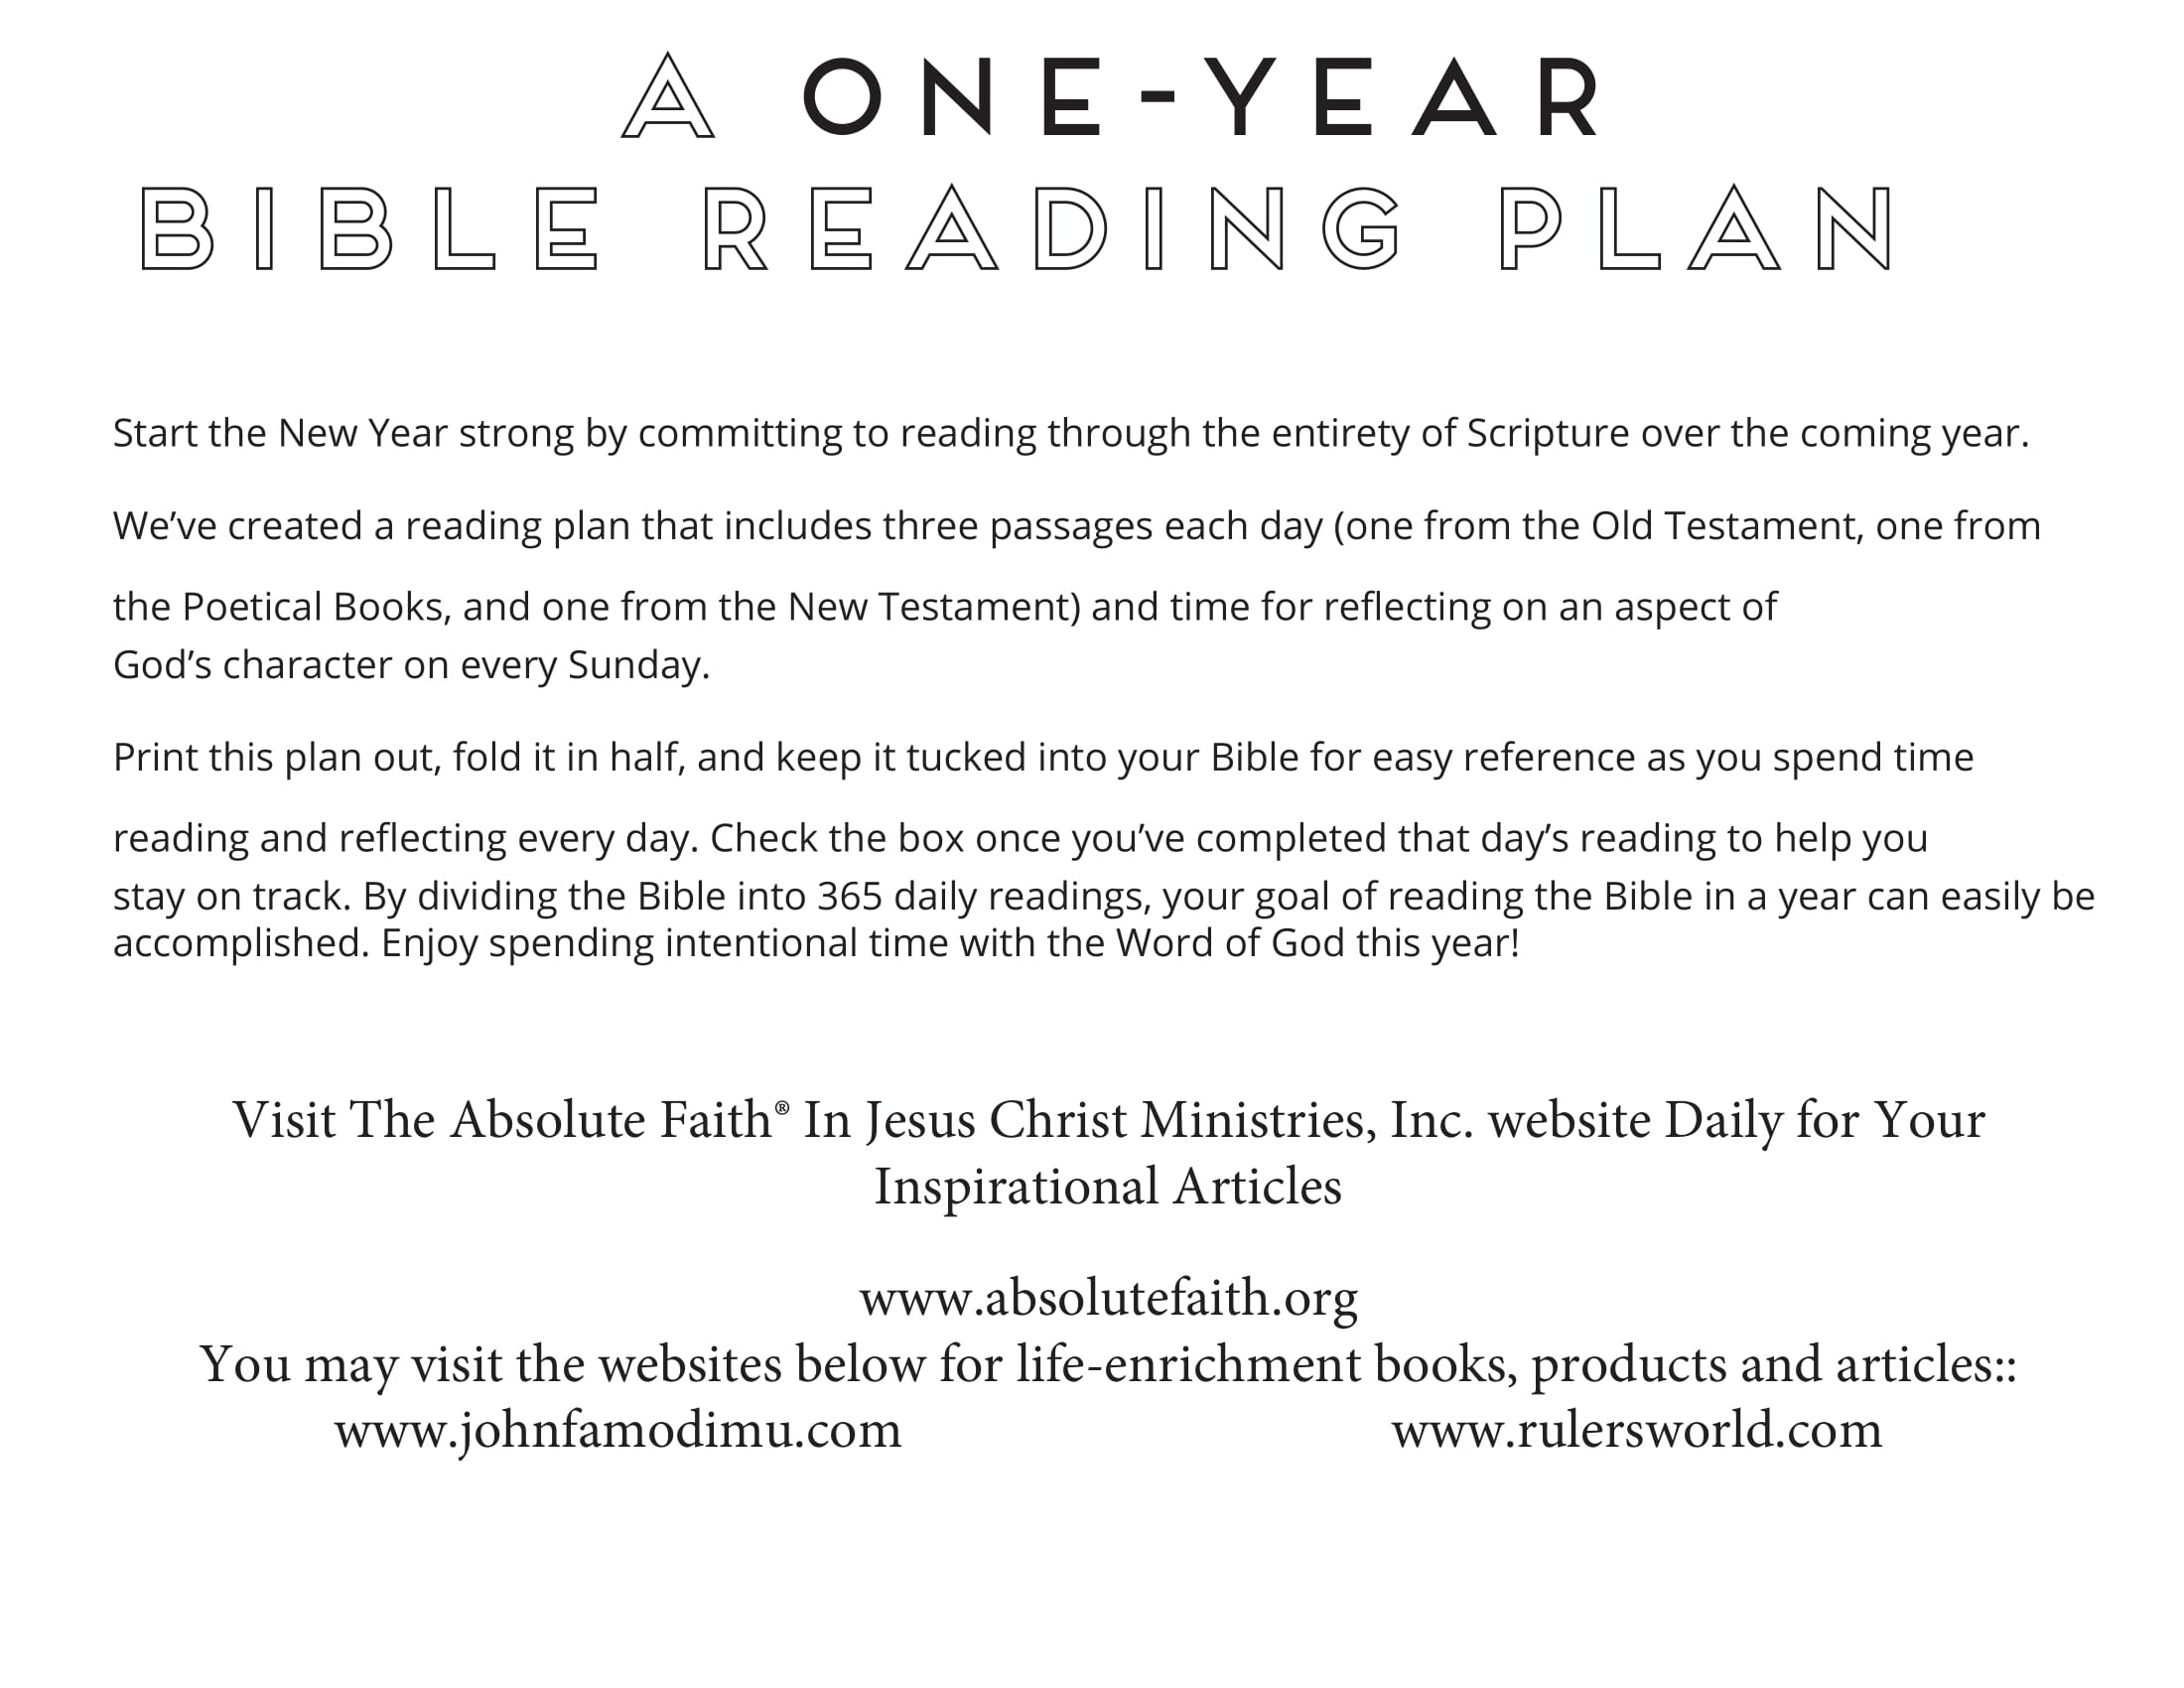 Year 2019 Bible Reading plan from Bishop (Dr.) John Famodimu-1